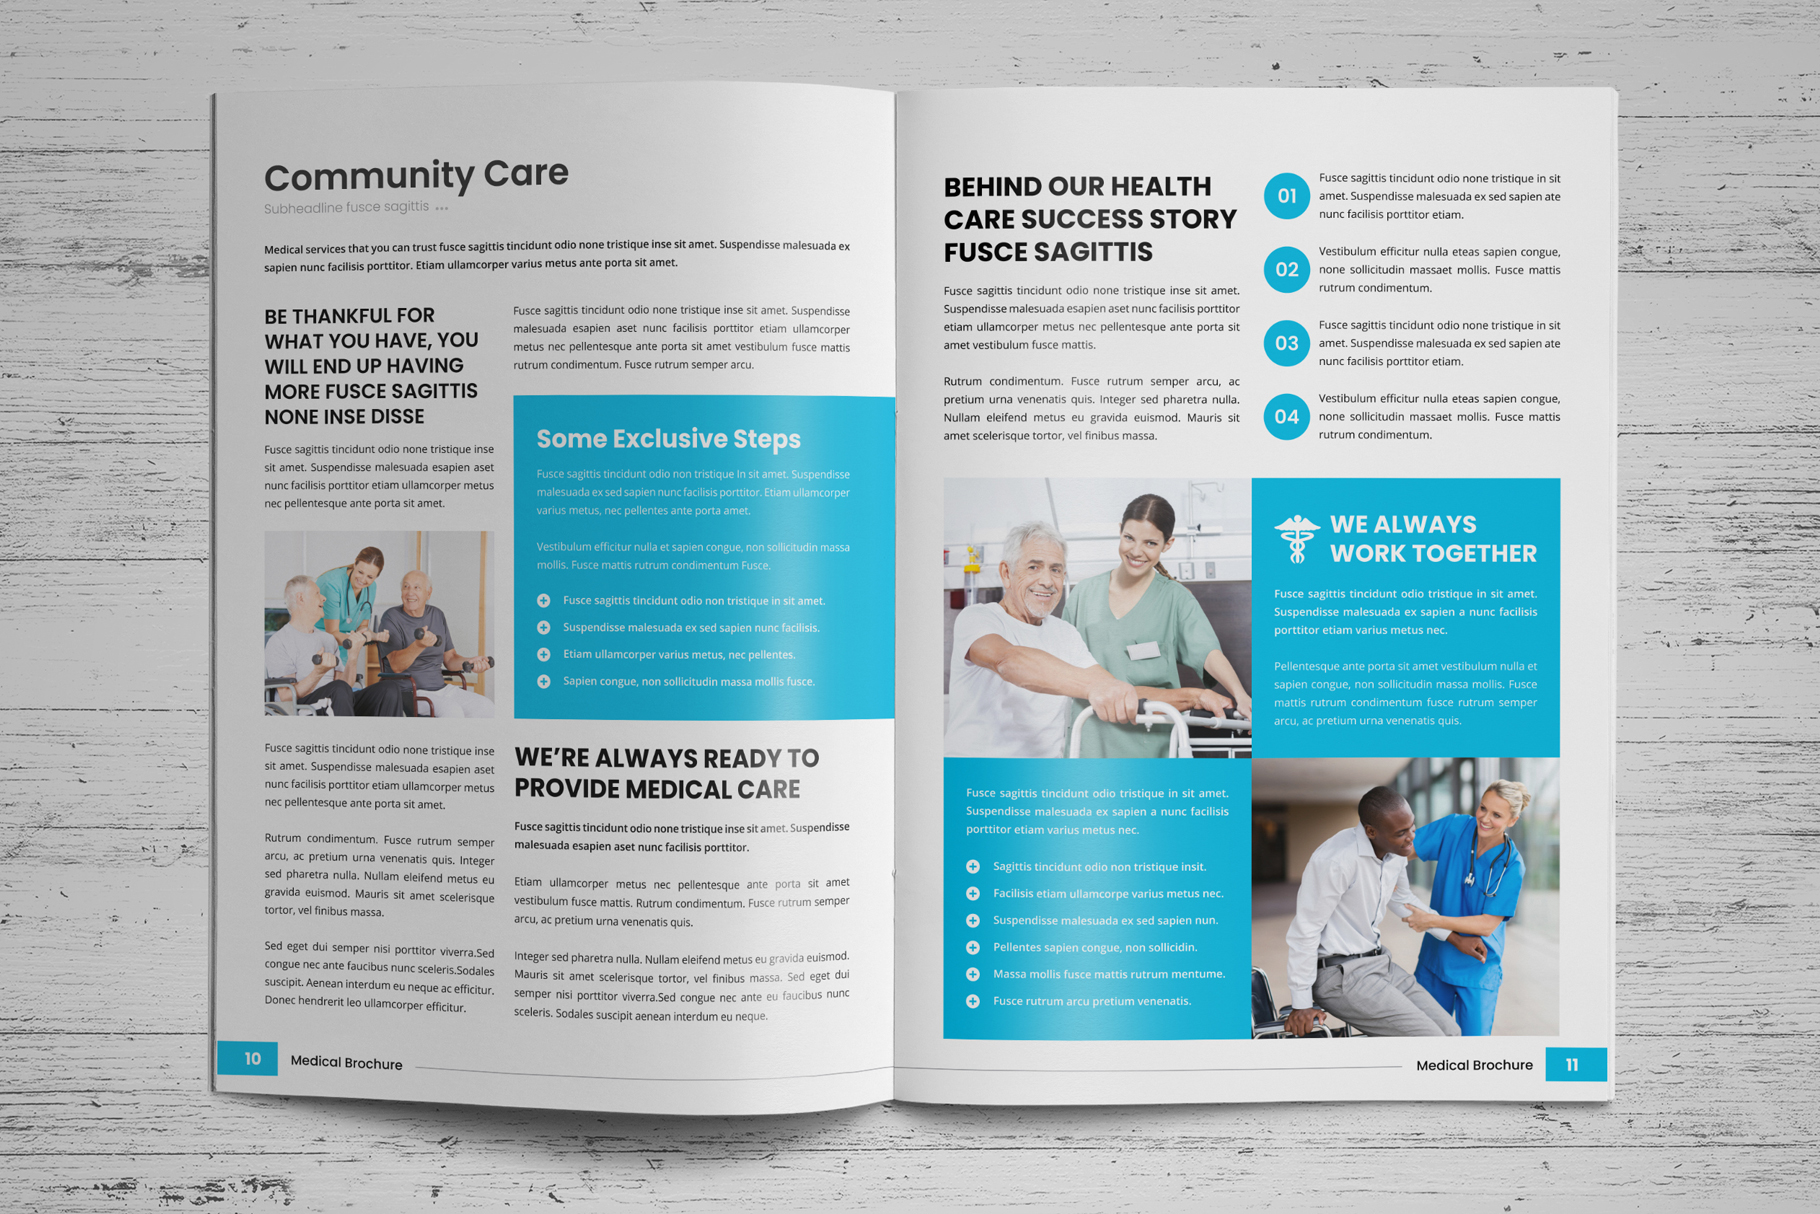 Medical HealthCare Brochure v6 example image 7